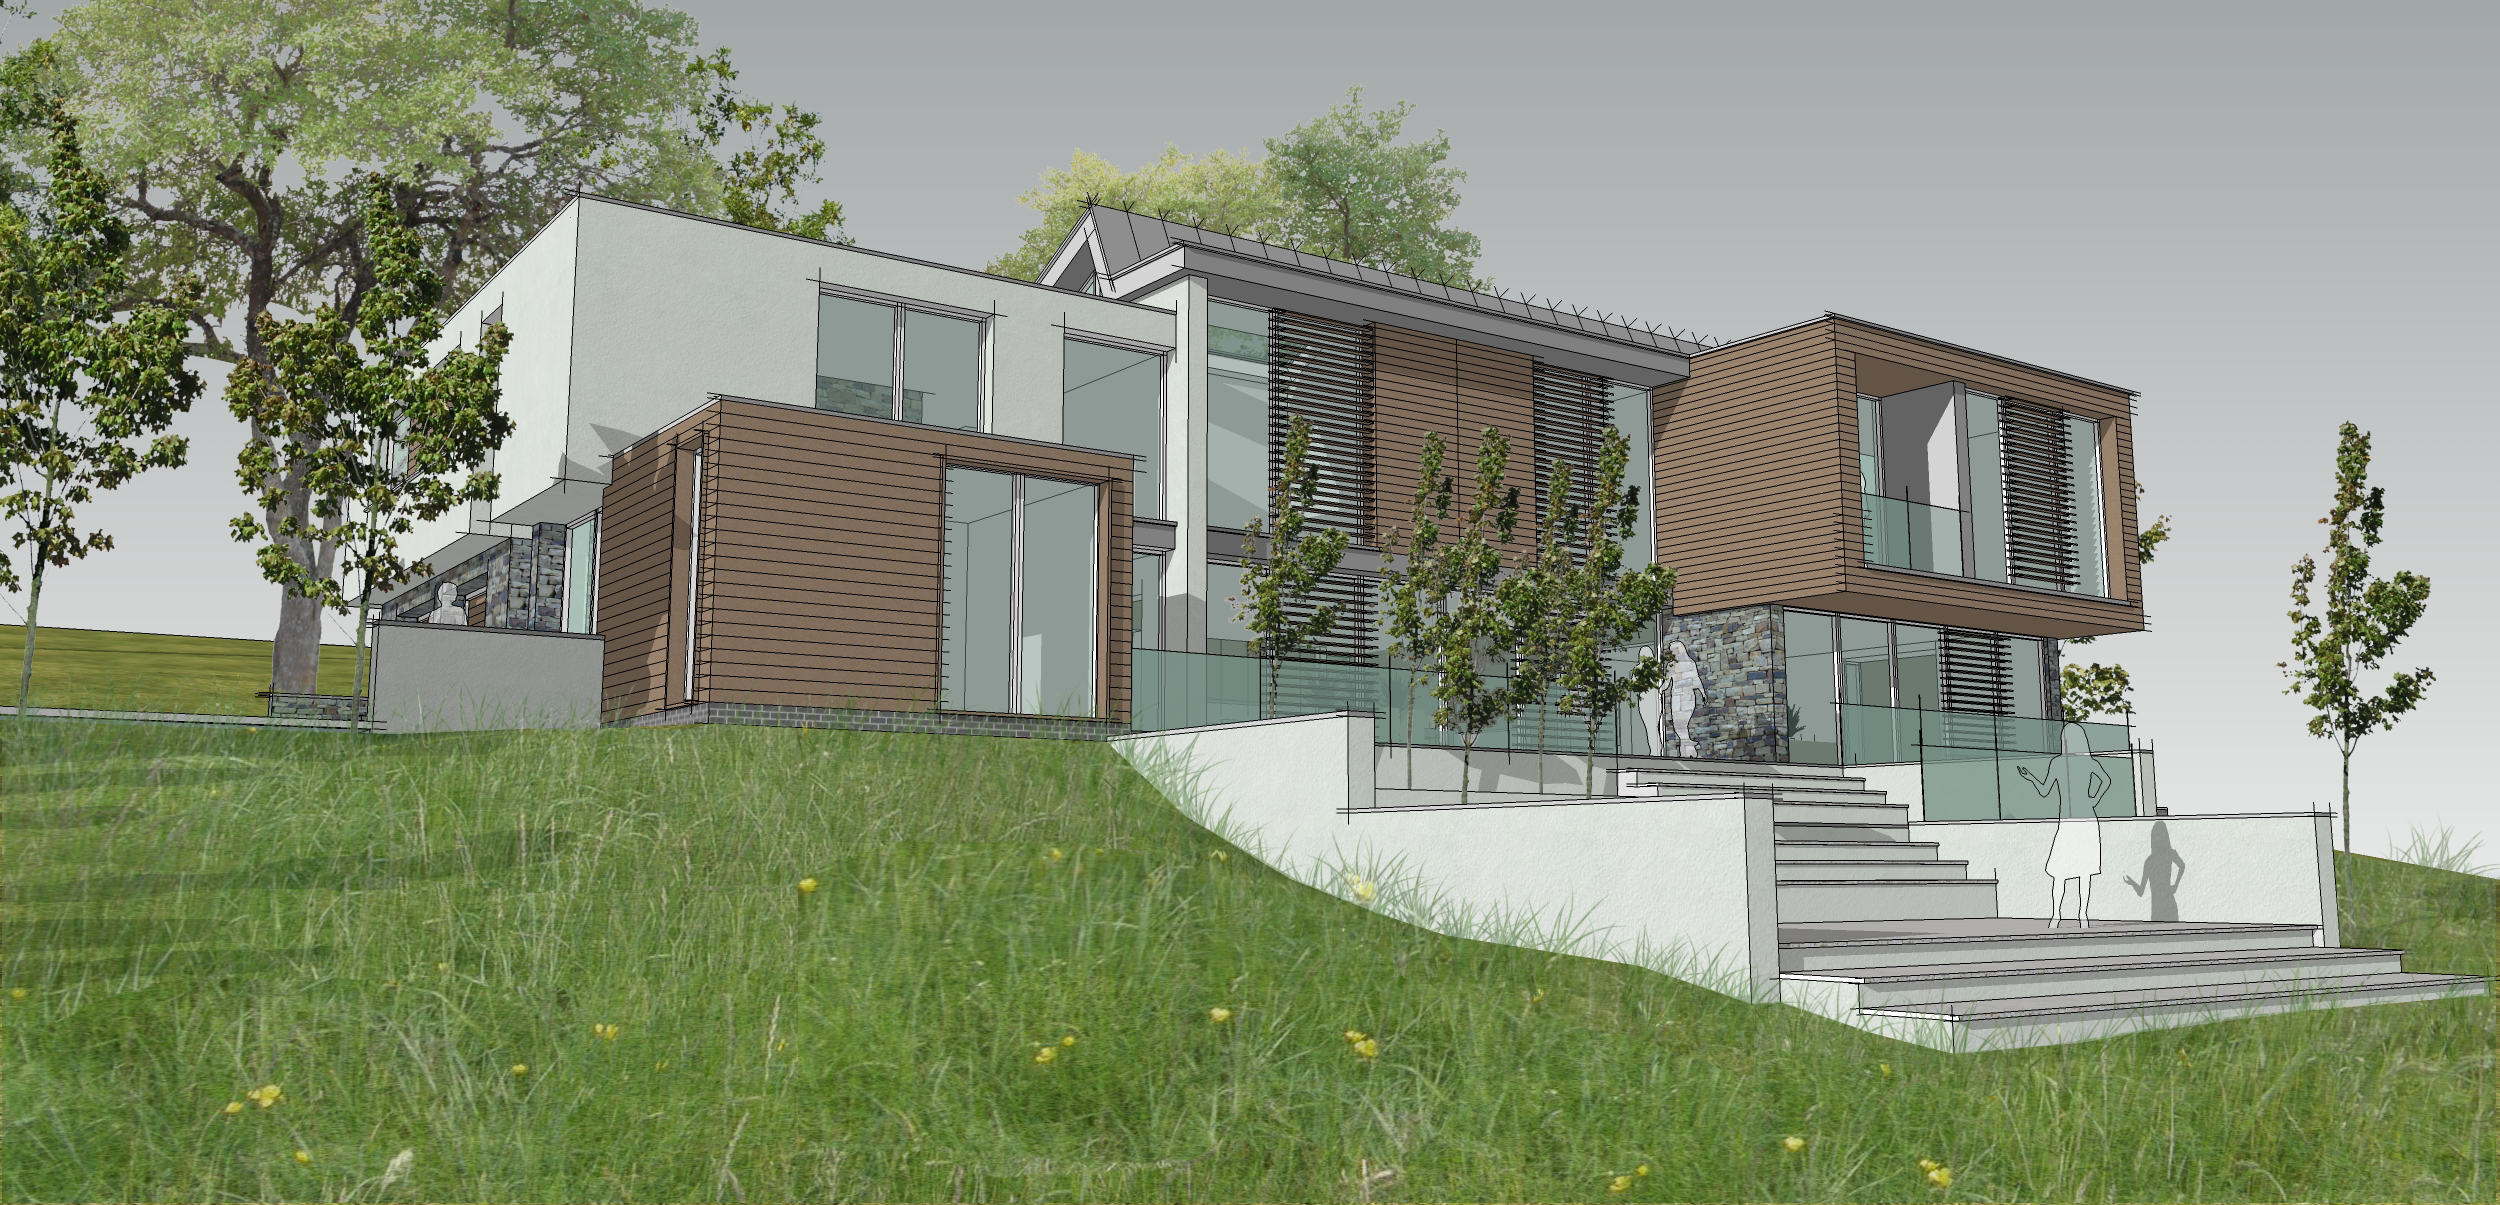 Contemporary house design progresses through feasibility Contemporary style house